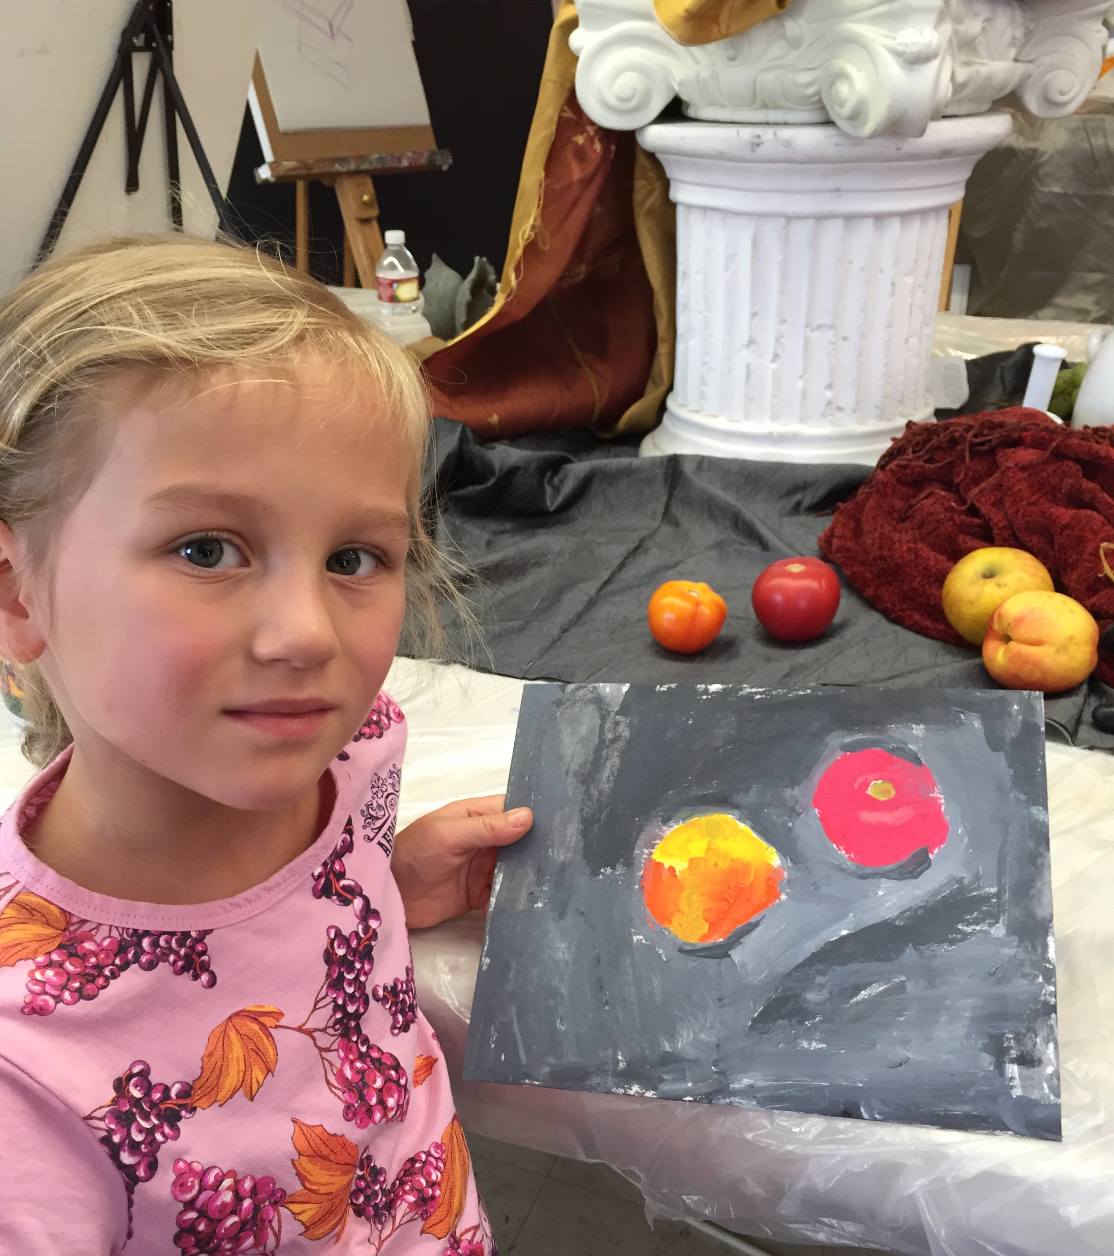 Mountain View kids art studio